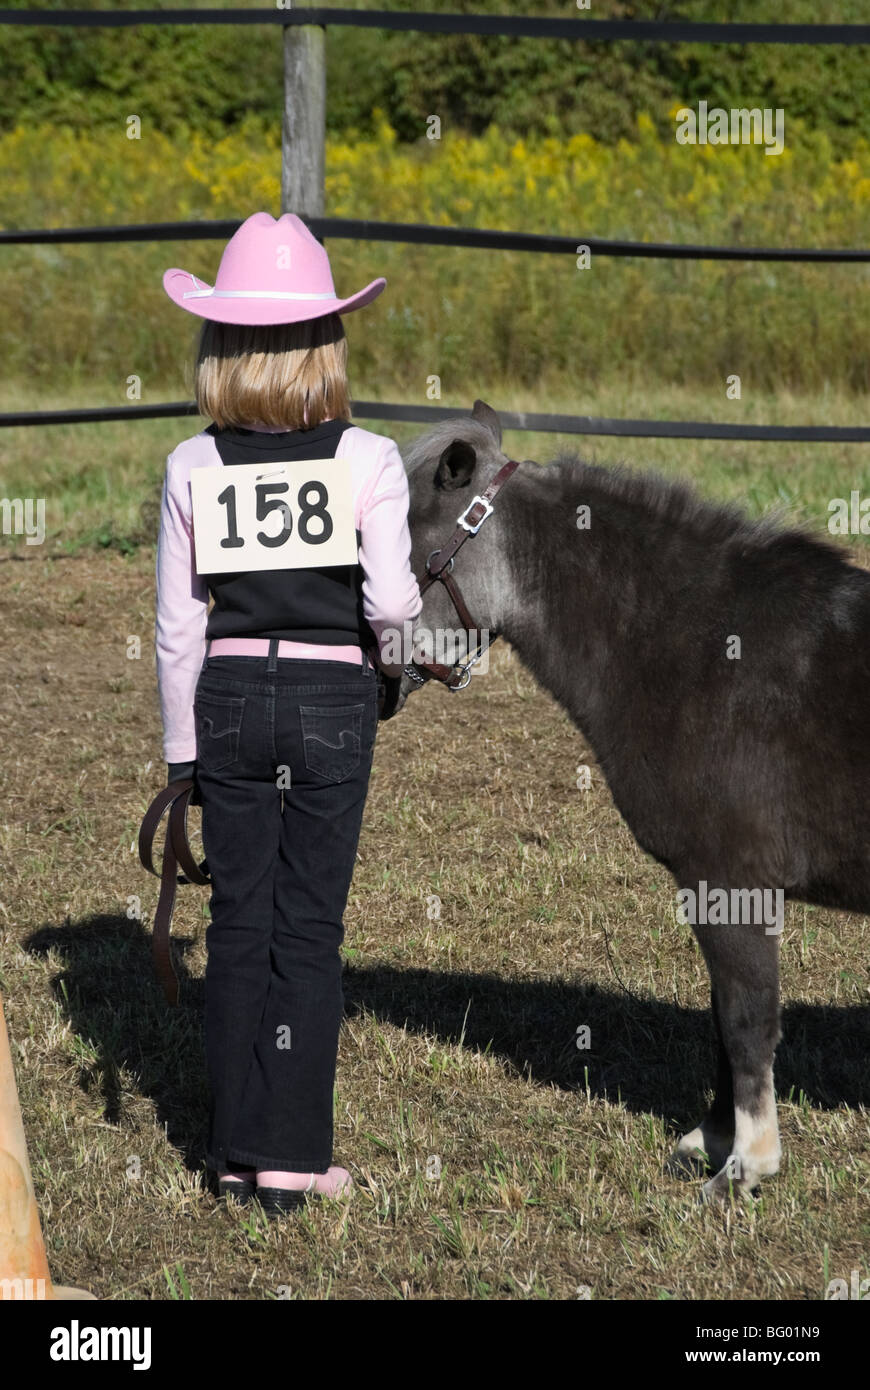 Young girl with pink boots and cowboy hat competing in a horse show halter  class with a fuzzy gray miniature horse. 494793effe94